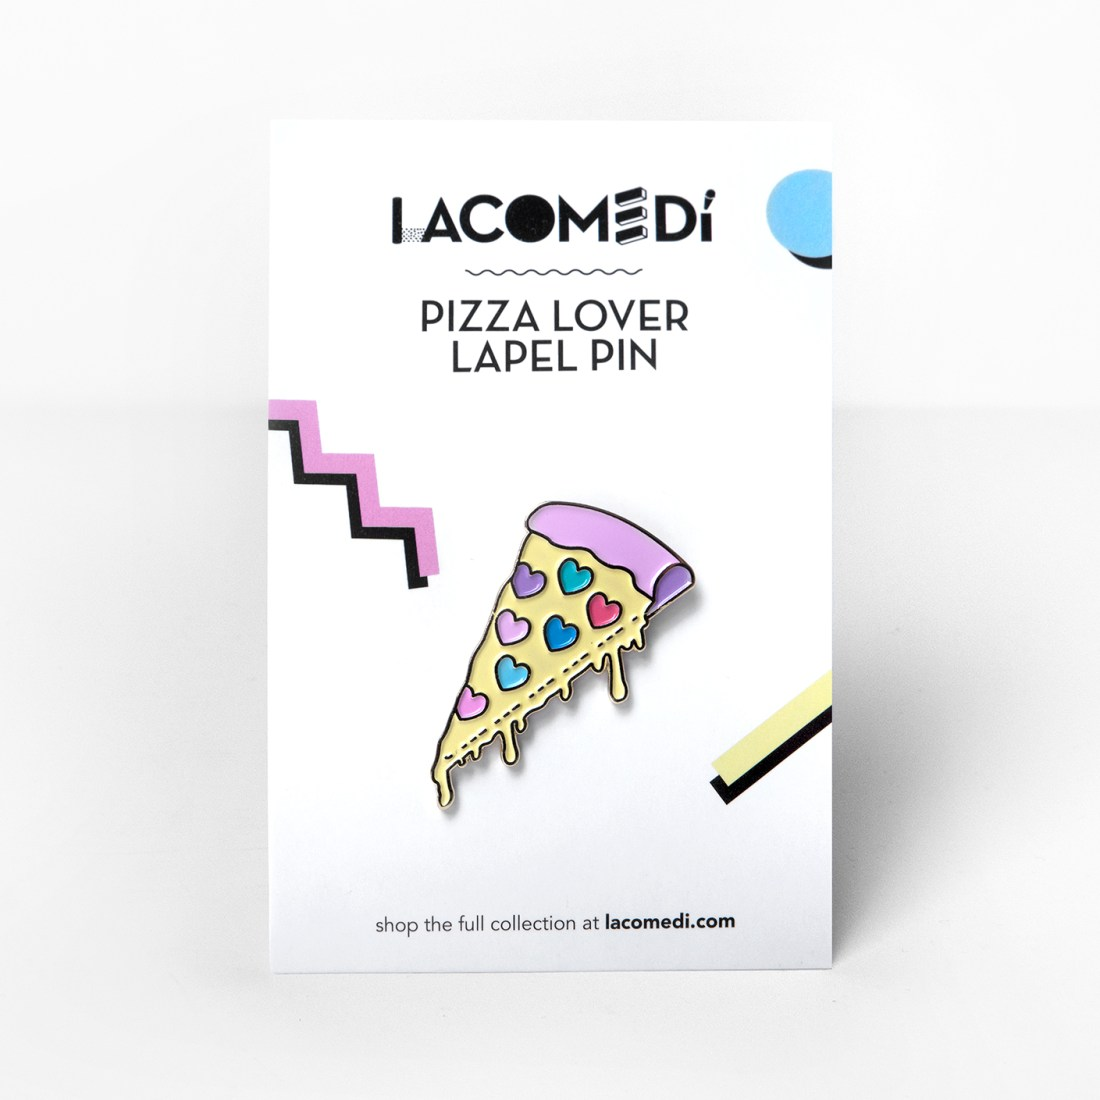 Pizza Lover Pin by La come Di